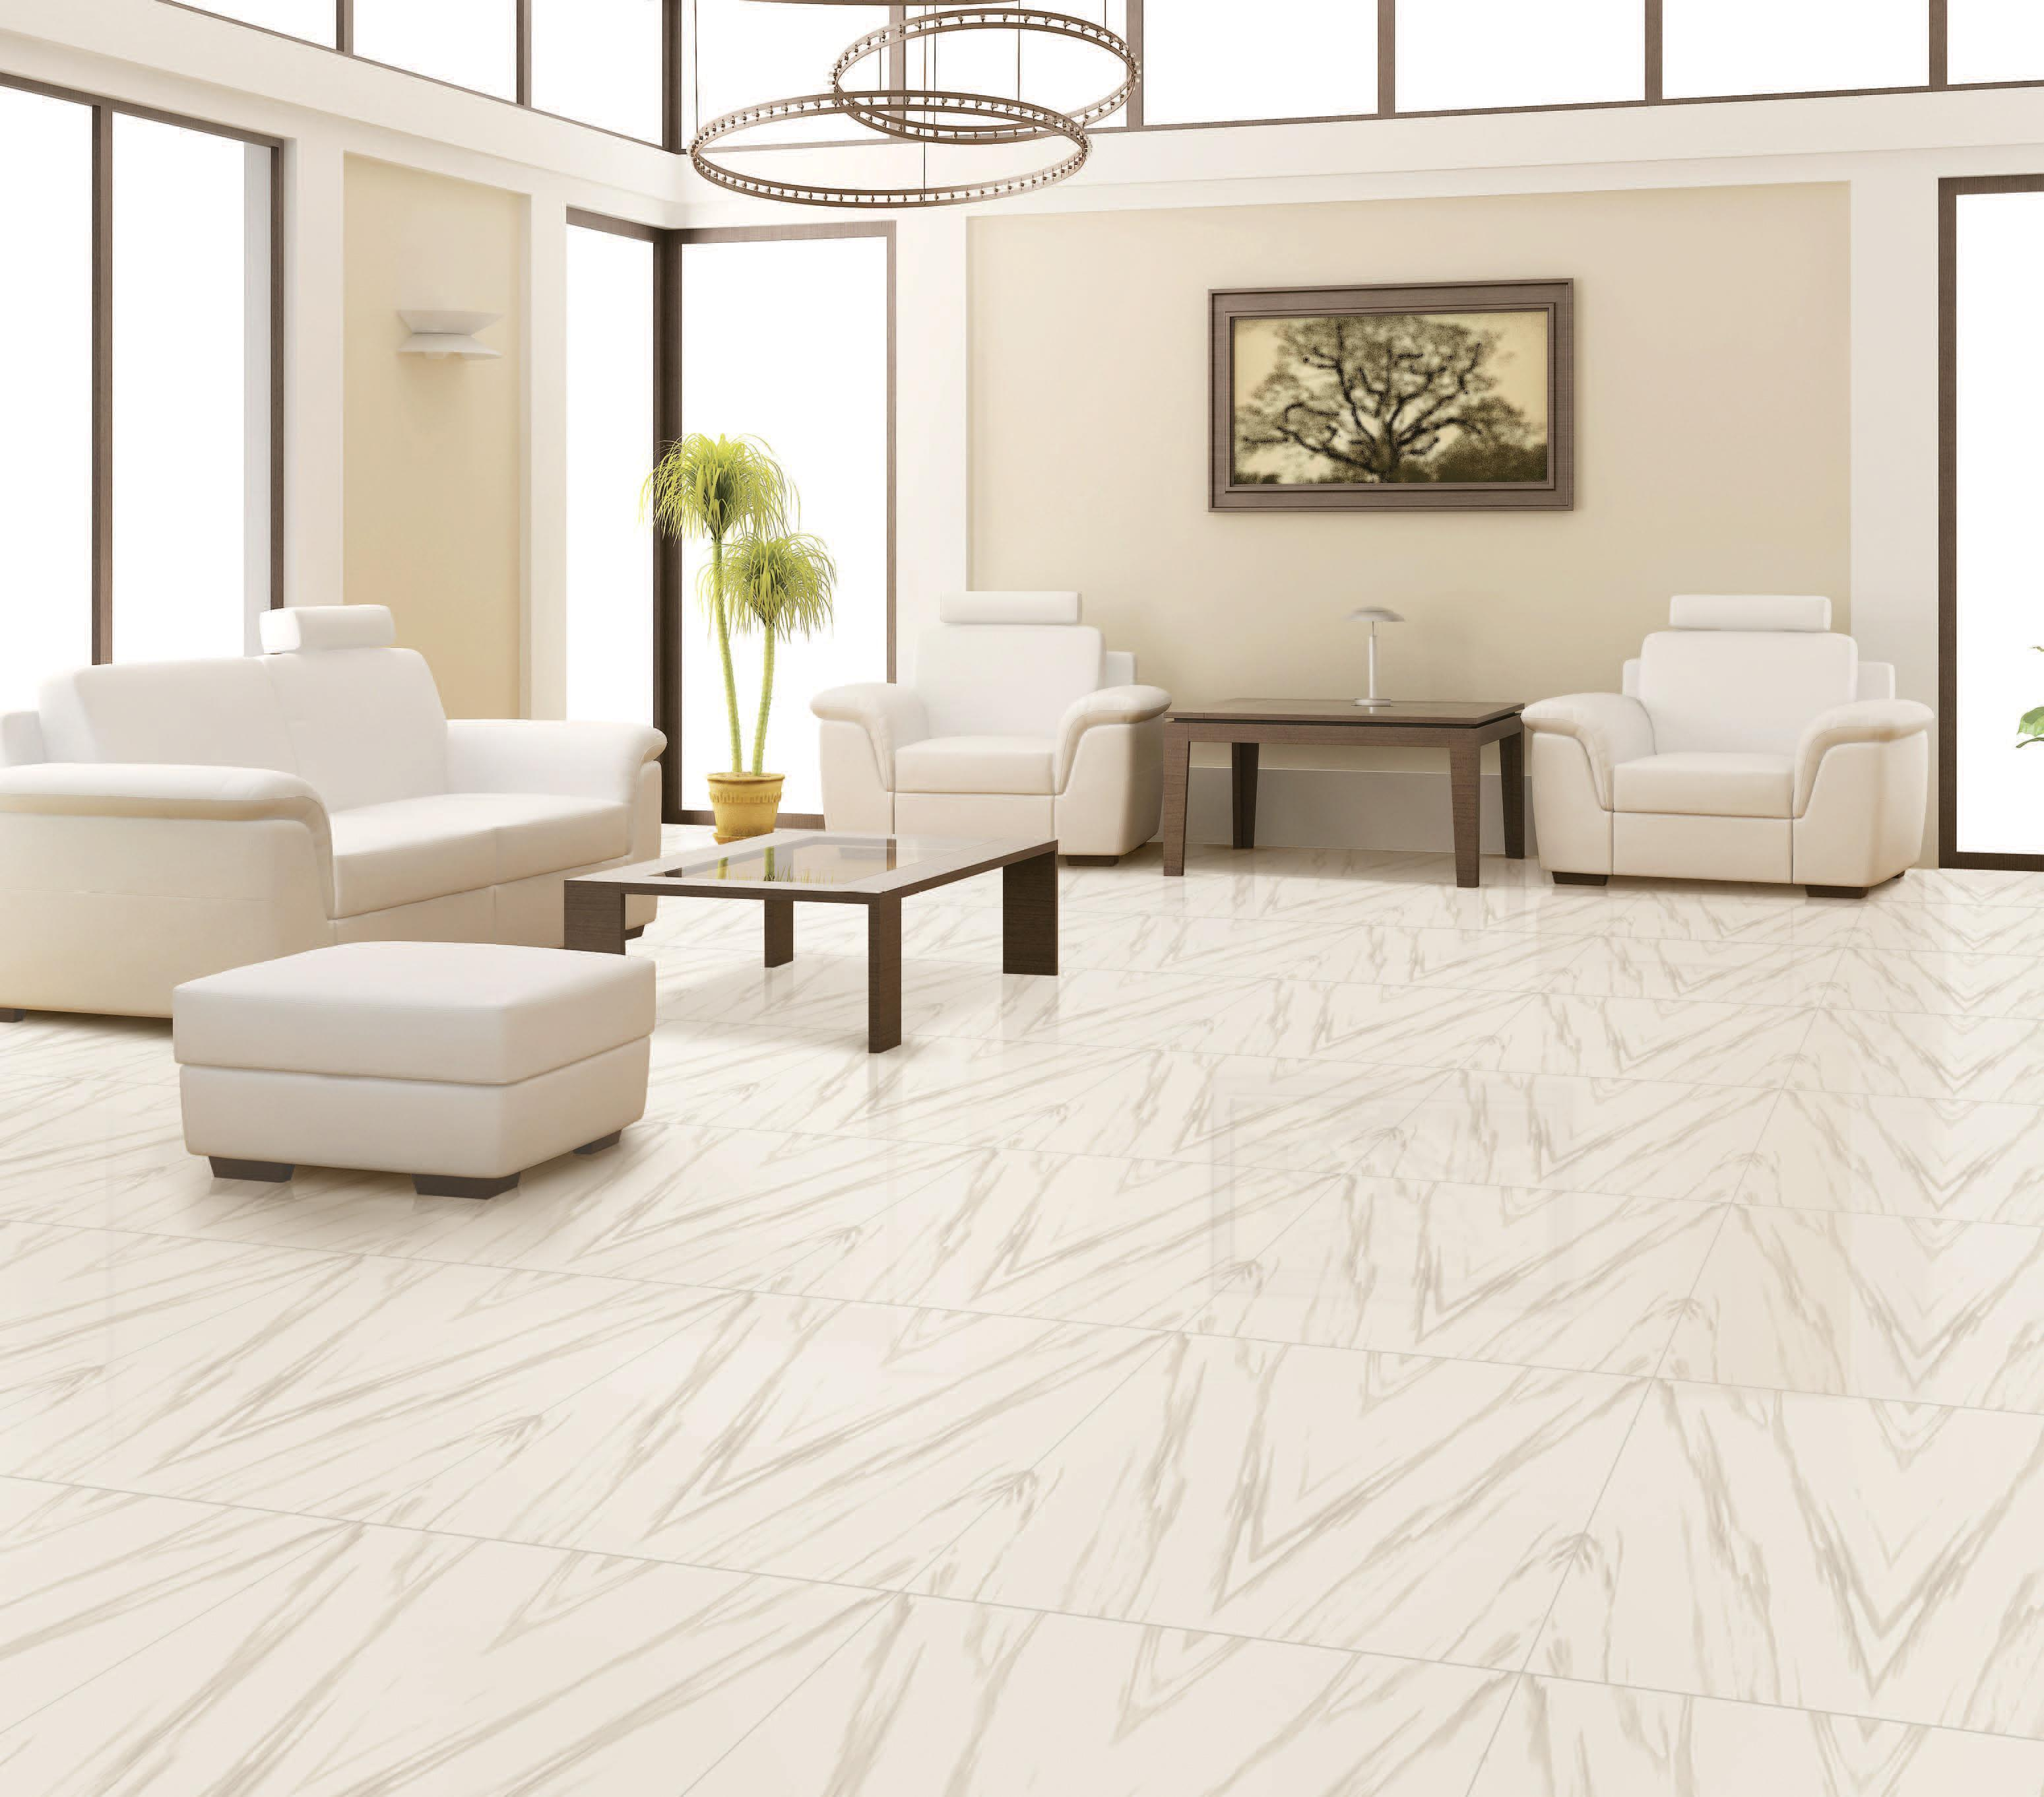 vitrified tiles International standard the current production rate of lezora is 21000 m2 ultra-tech vitrified tiles per day that makes us able to meet with bulk-size orders from our clientèle.